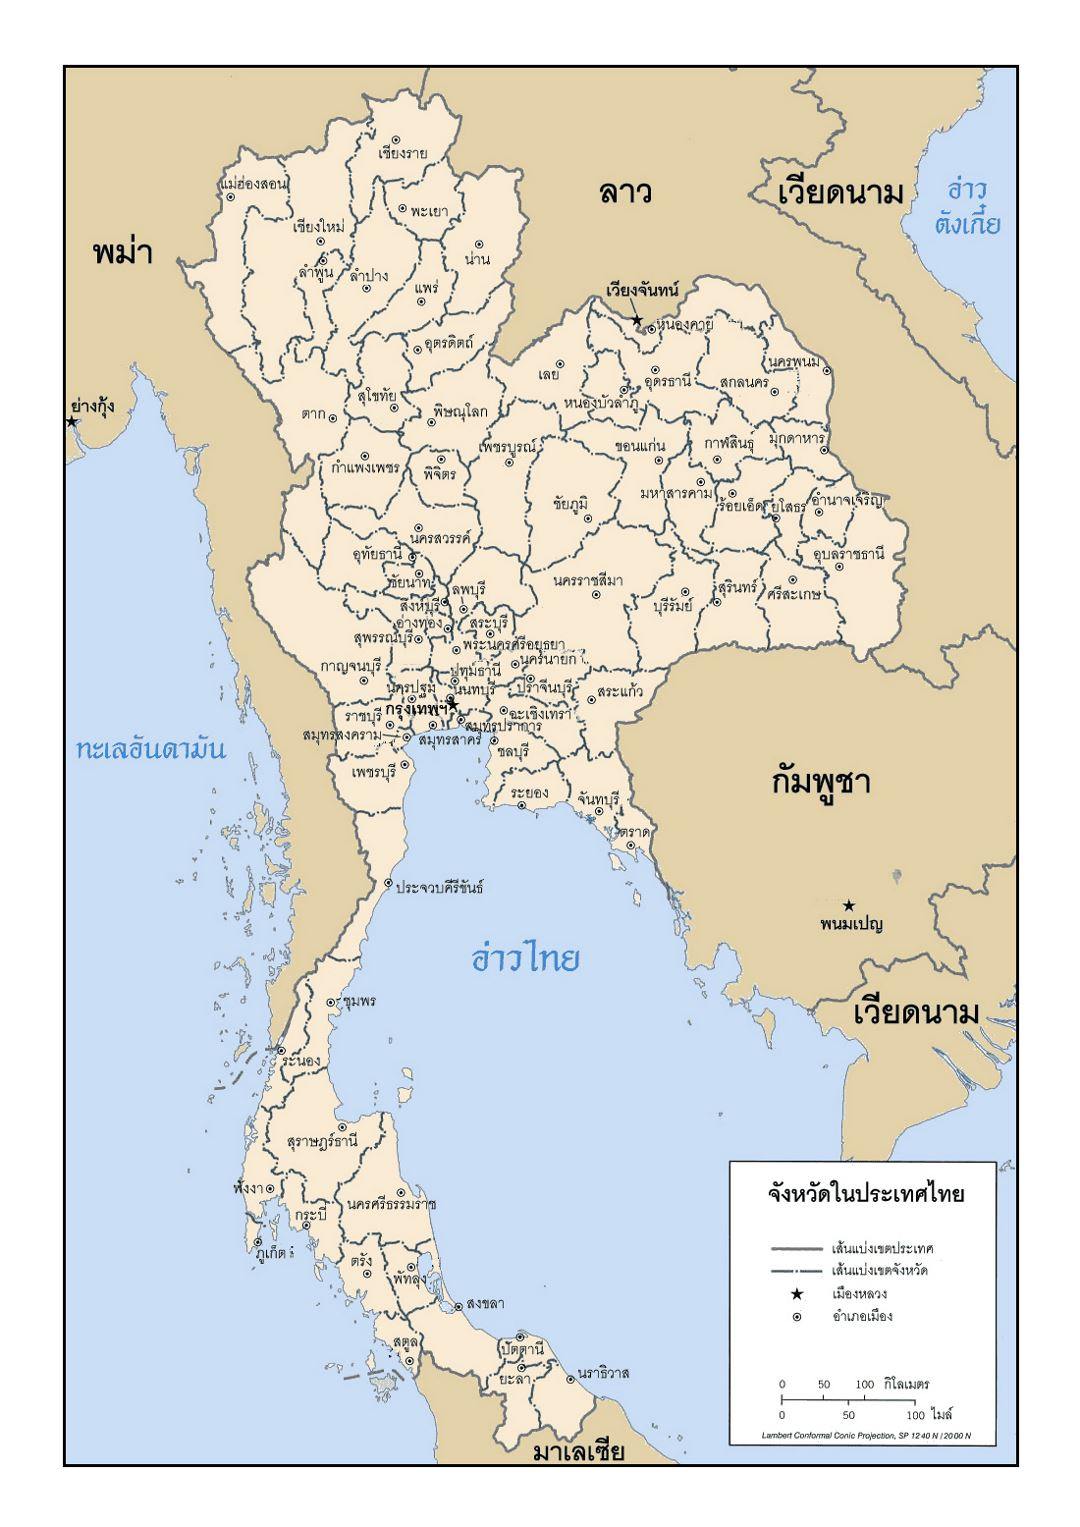 Detailed administrative map of Thailand in thai